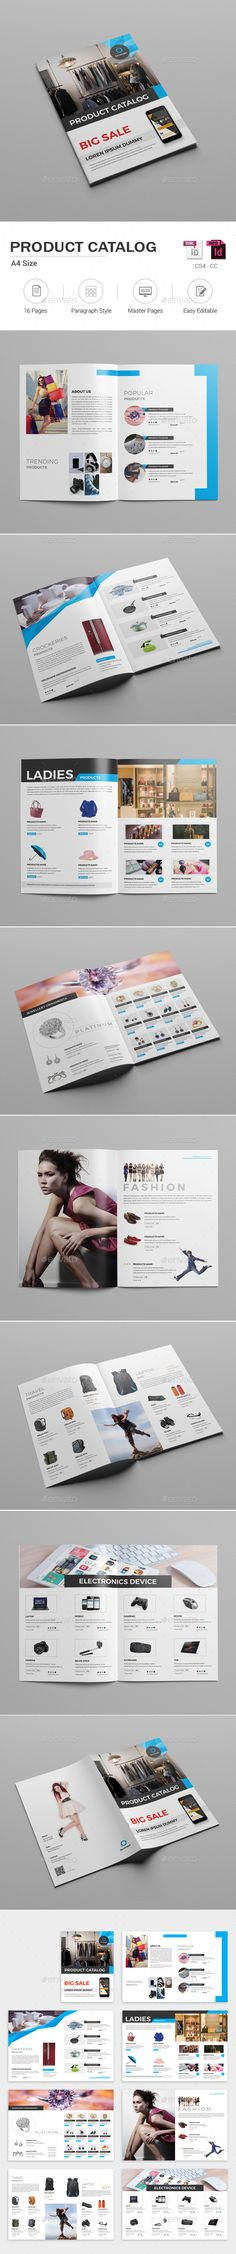 Brochure Brochures, Brochure template and Corporate brochure - advertising brochure template